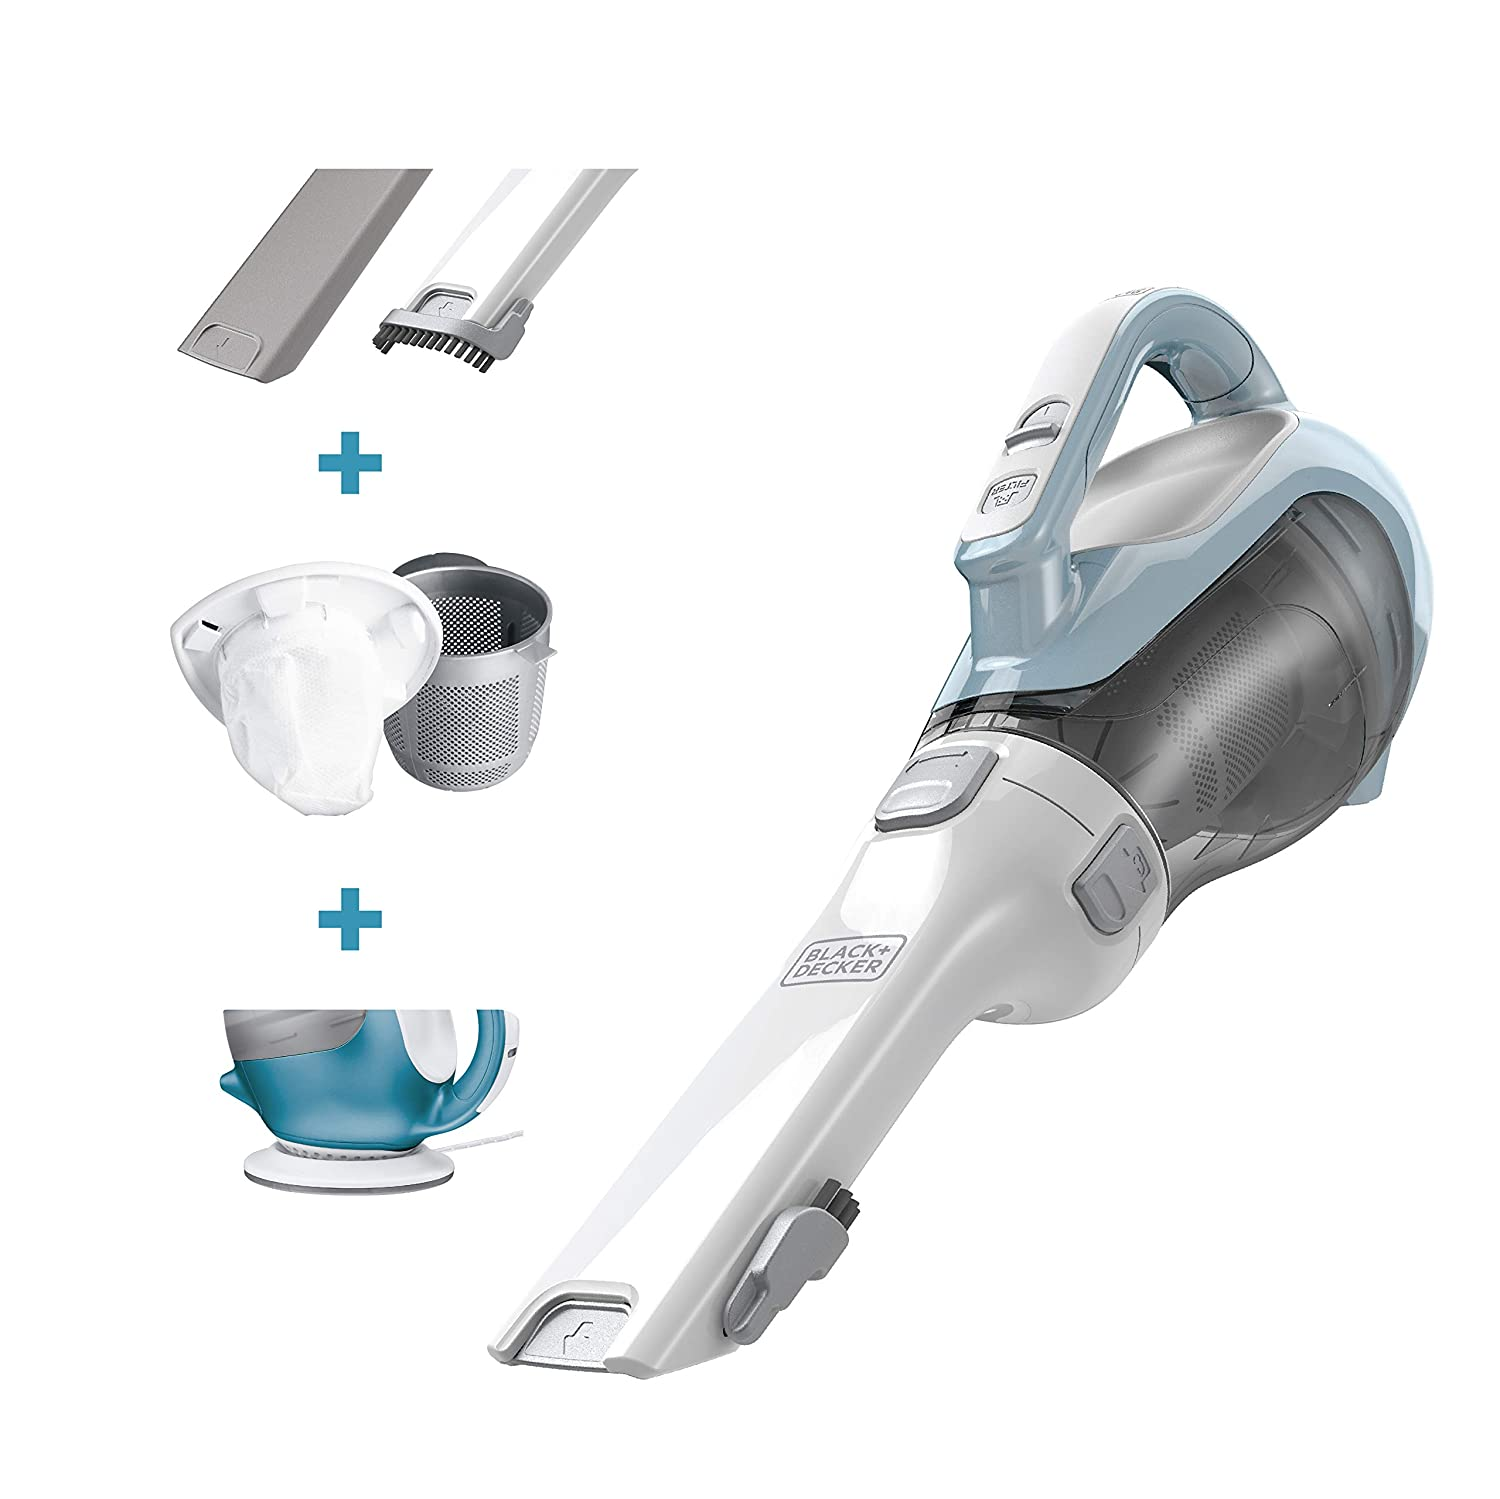 BLACK+DECKER dustbuster Handheld Vacuum